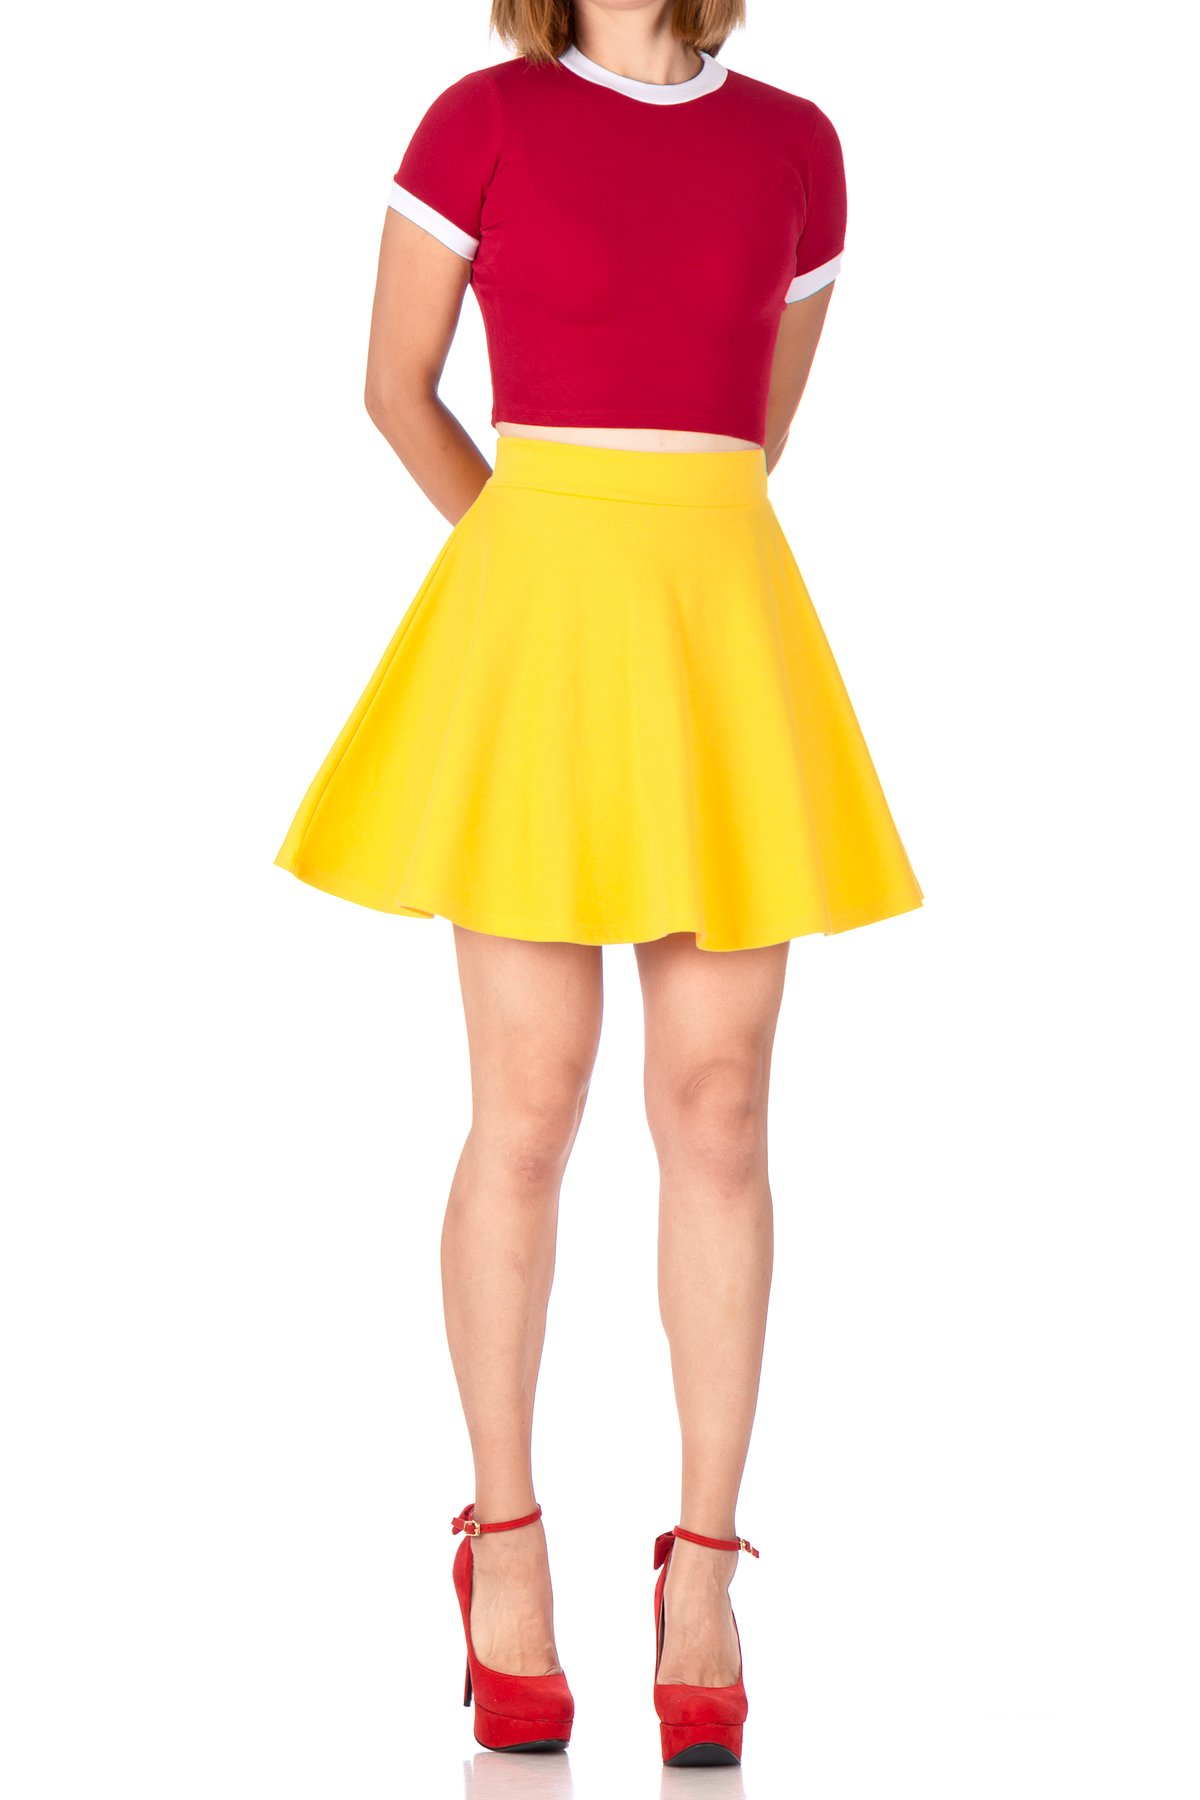 Basic Solid Stretchy Cotton High Waist A line Flared Skater Mini Skirt Yellow 01 2